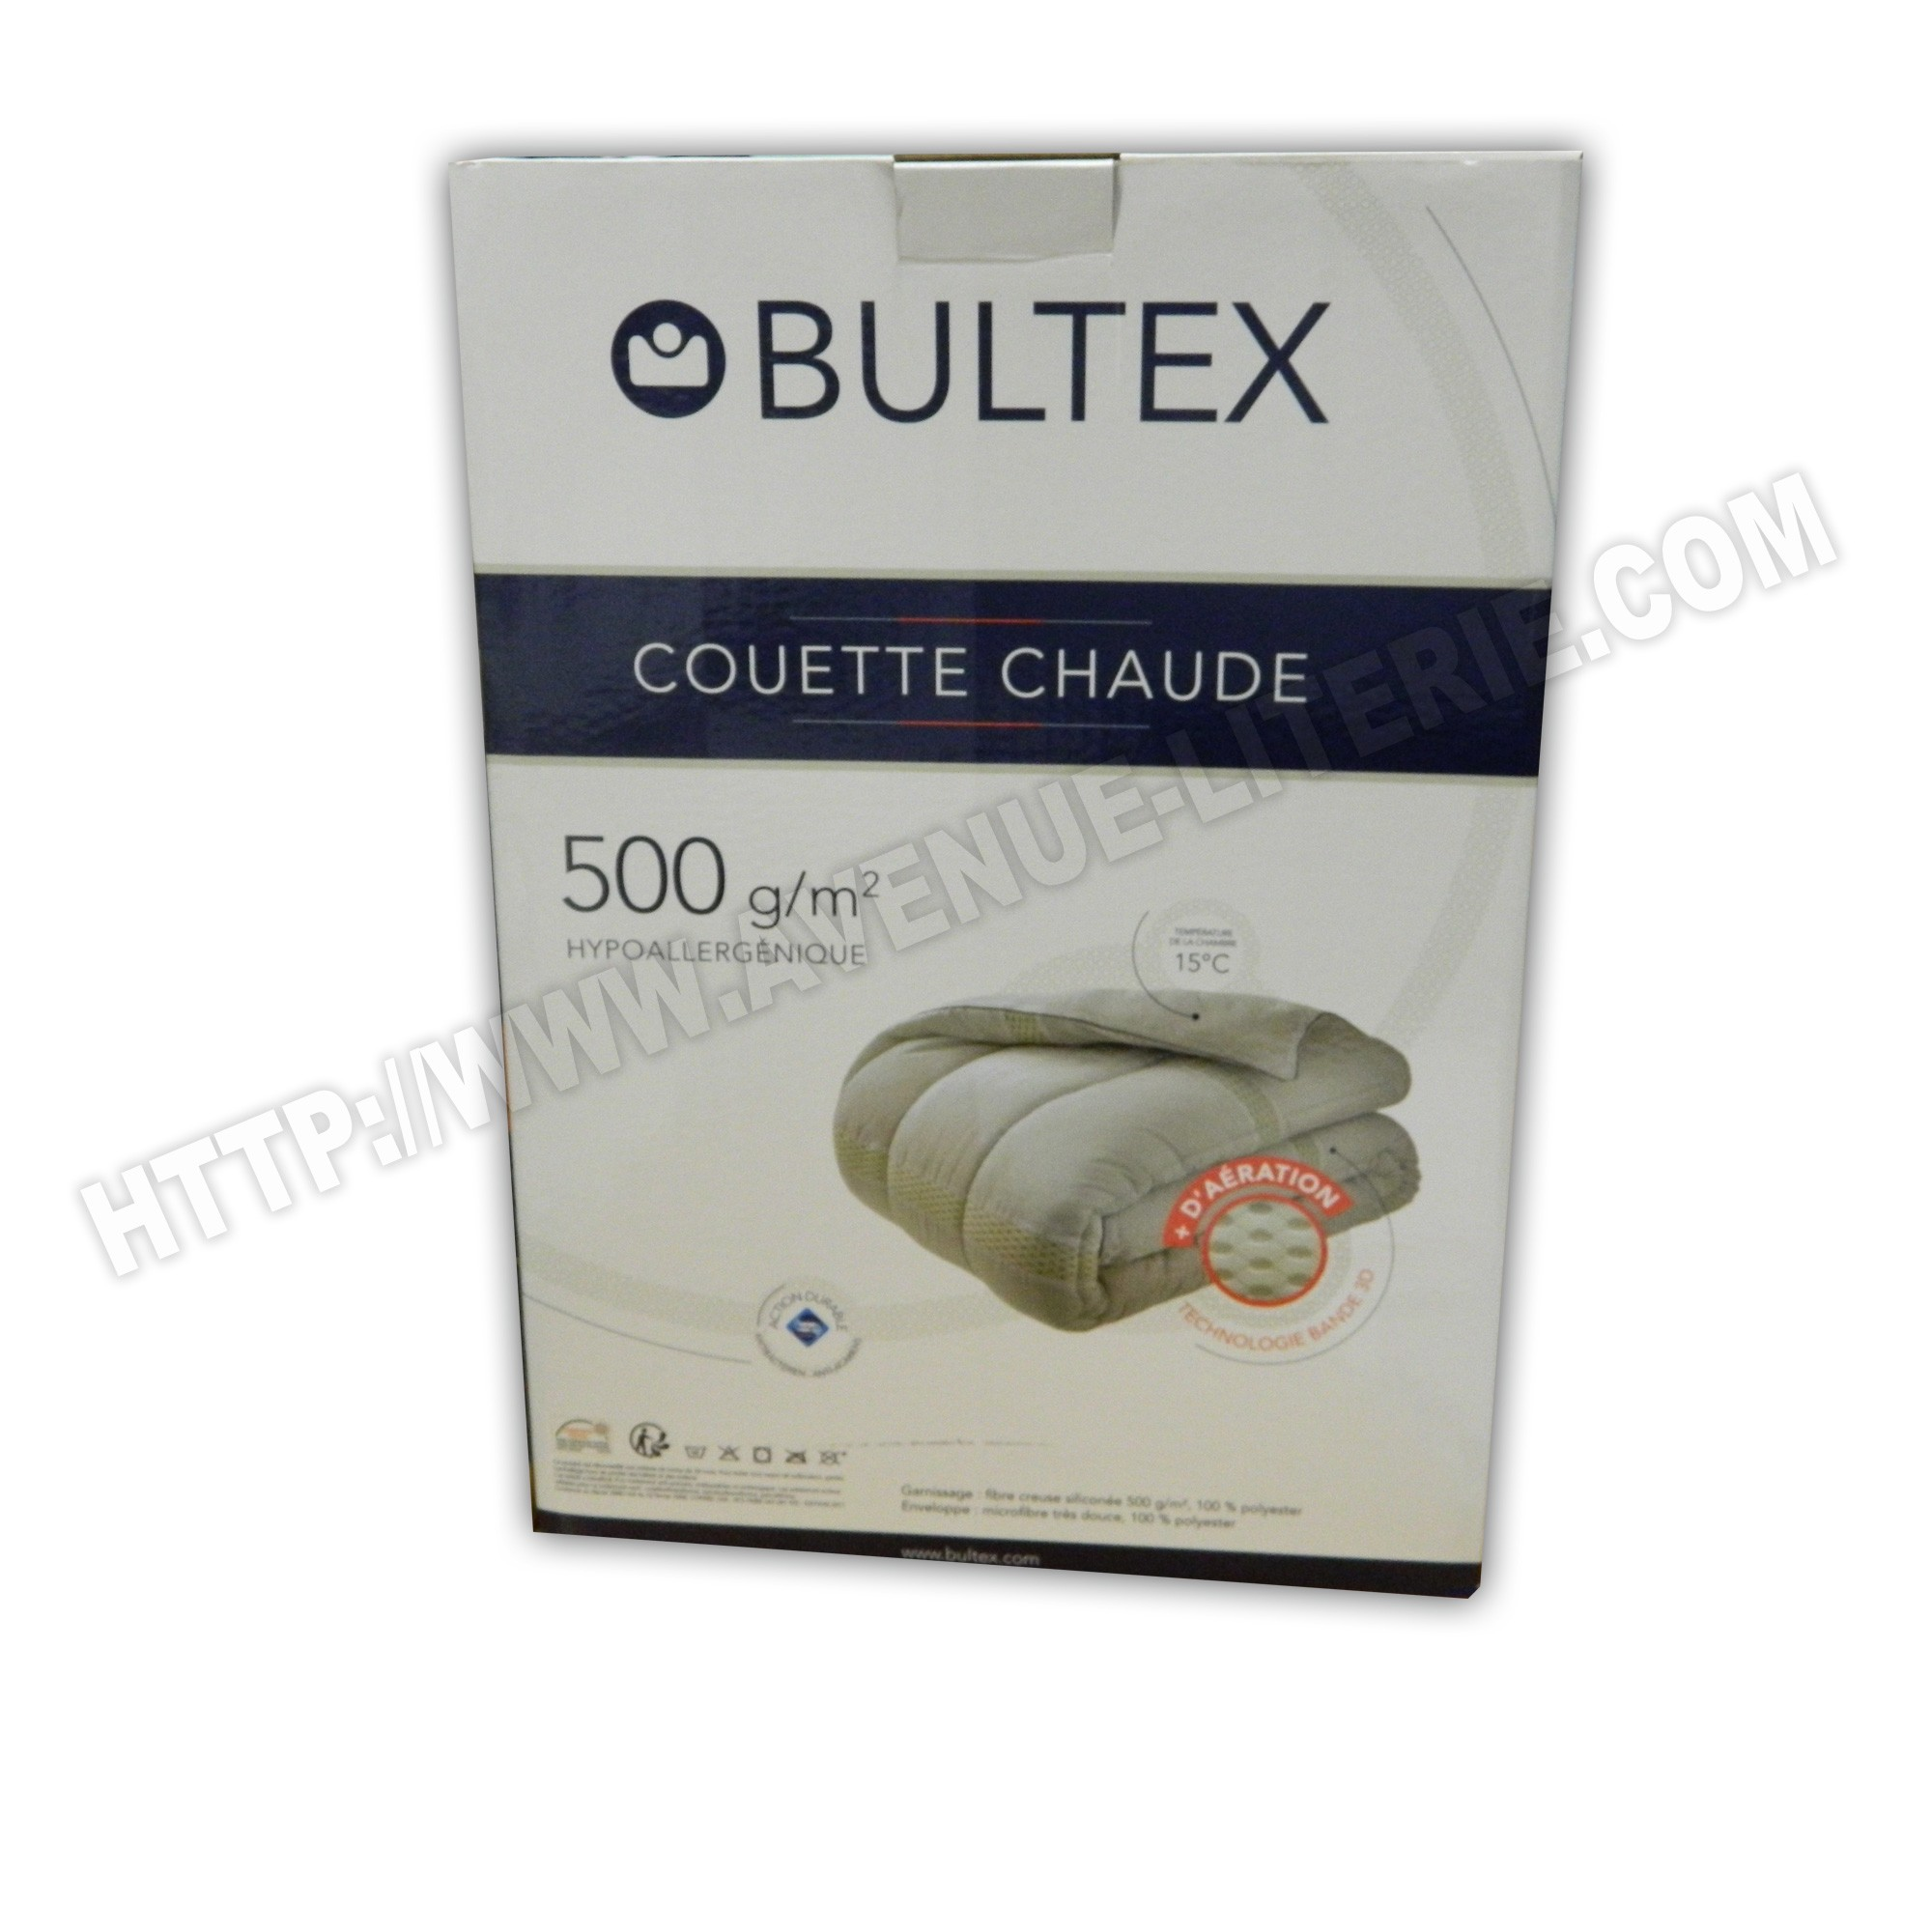 couette chaude 500g bultex 220x240. Black Bedroom Furniture Sets. Home Design Ideas